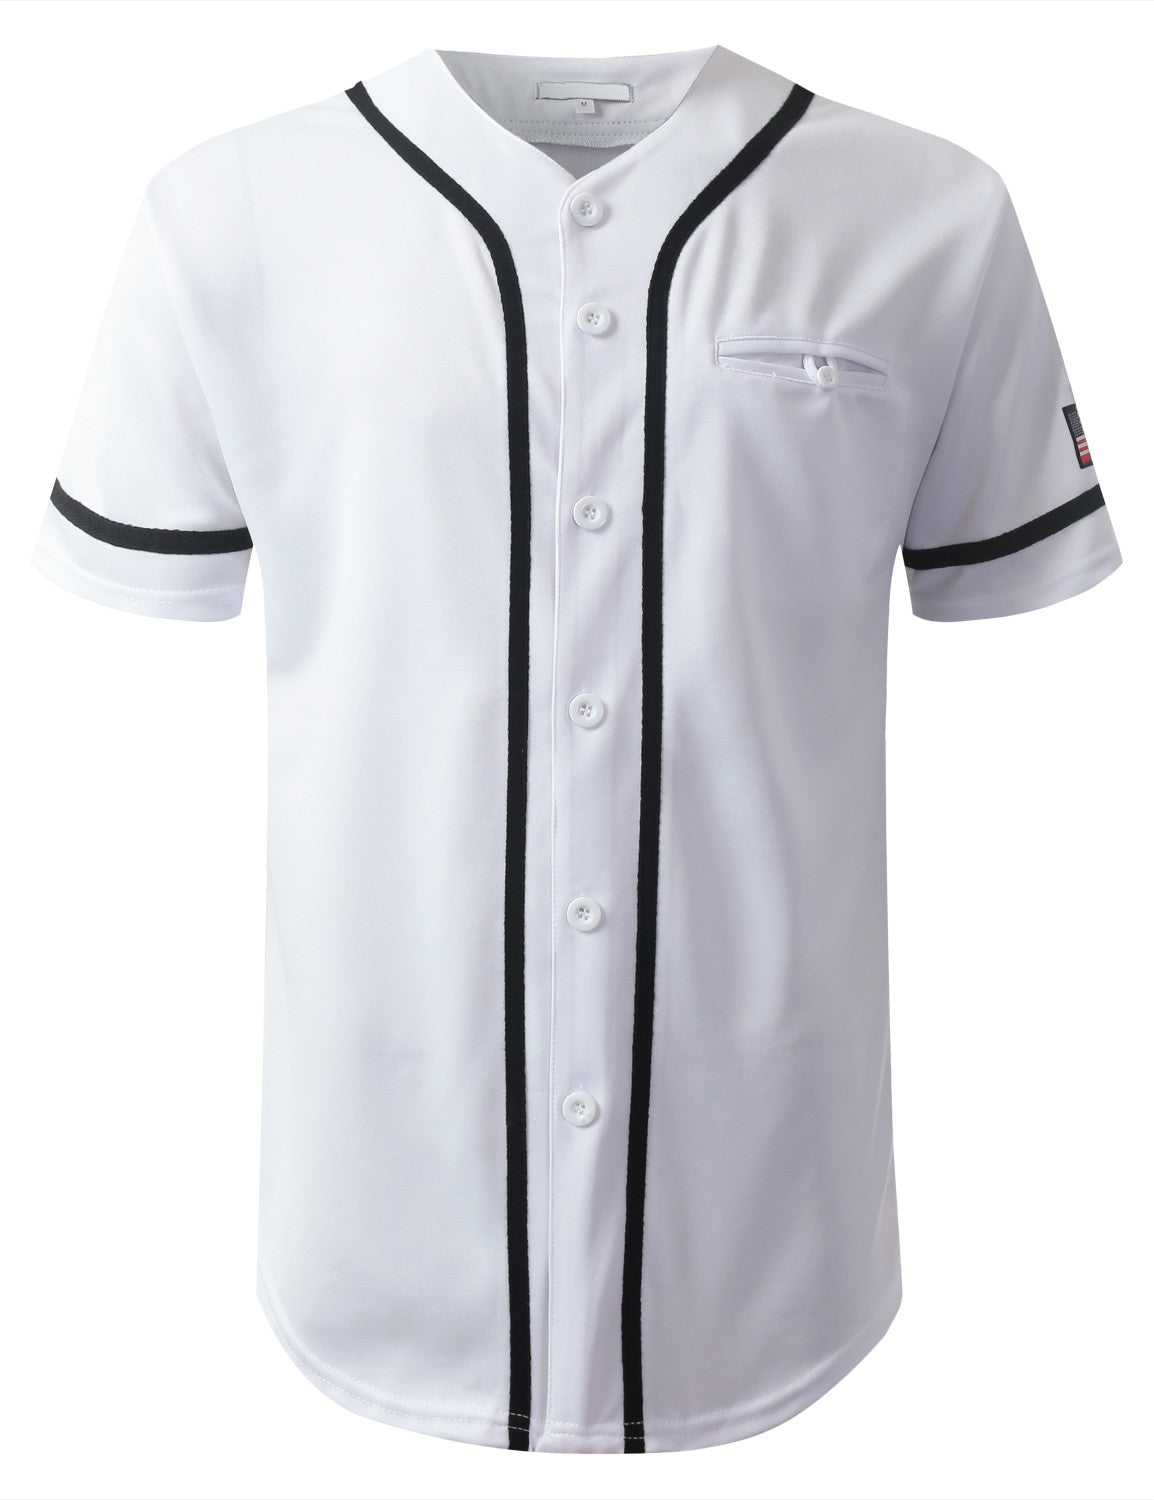 WHITE USA Flag Patch Button Down Baseball Jersey Shirts- URBANCREWS